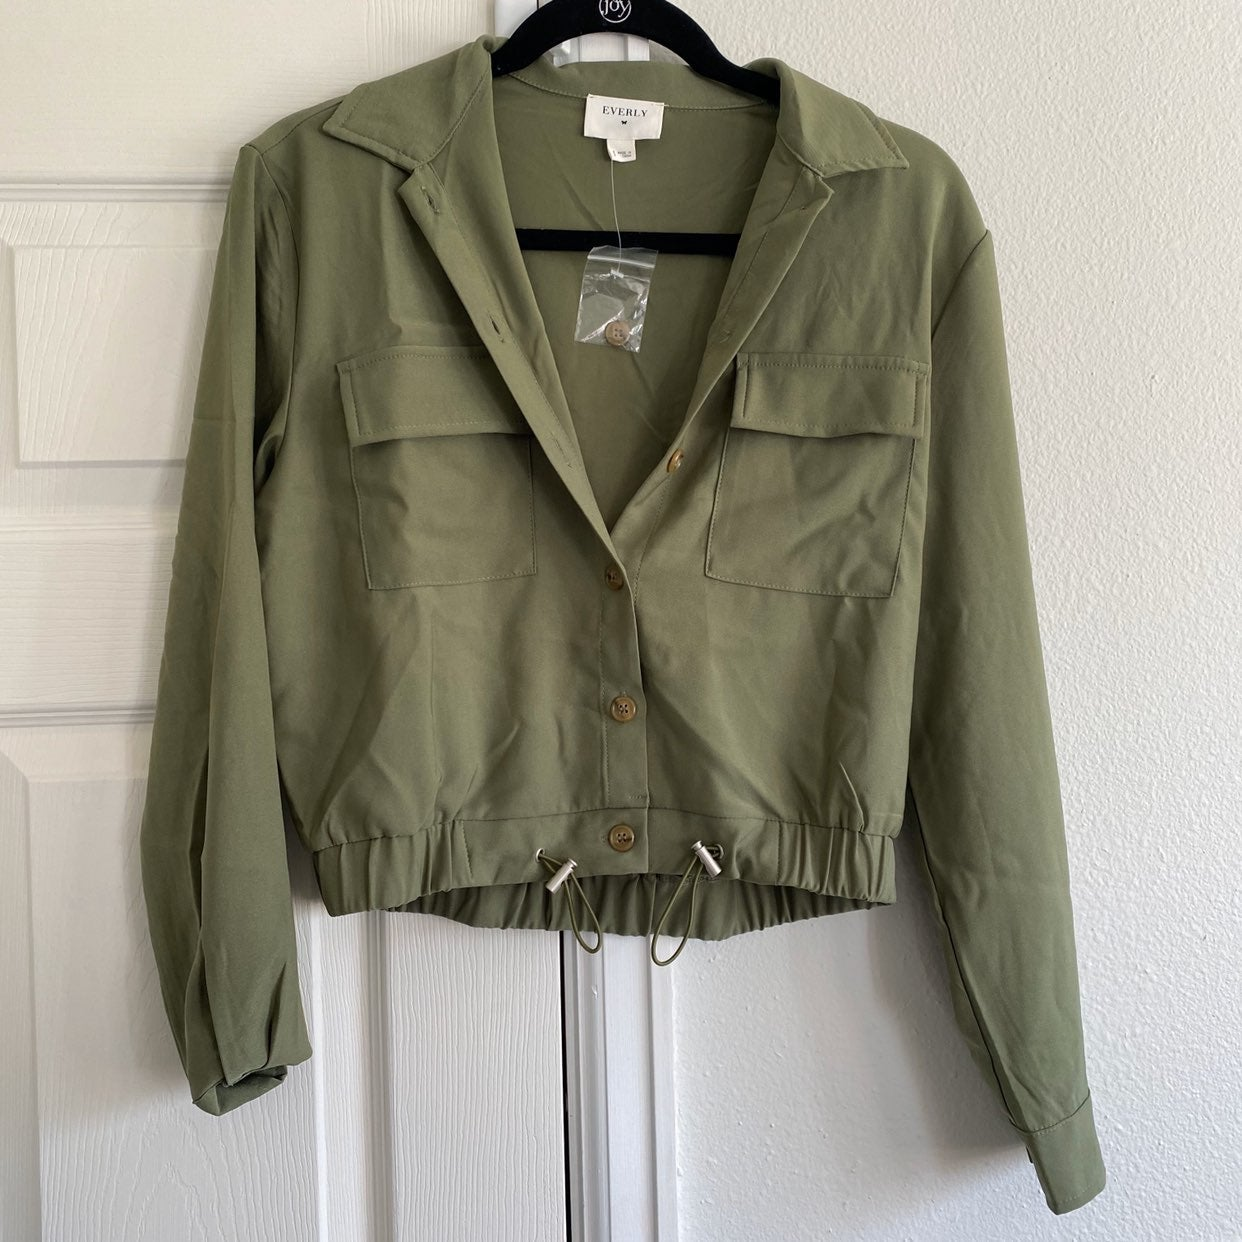 Everly army green long sleeve top